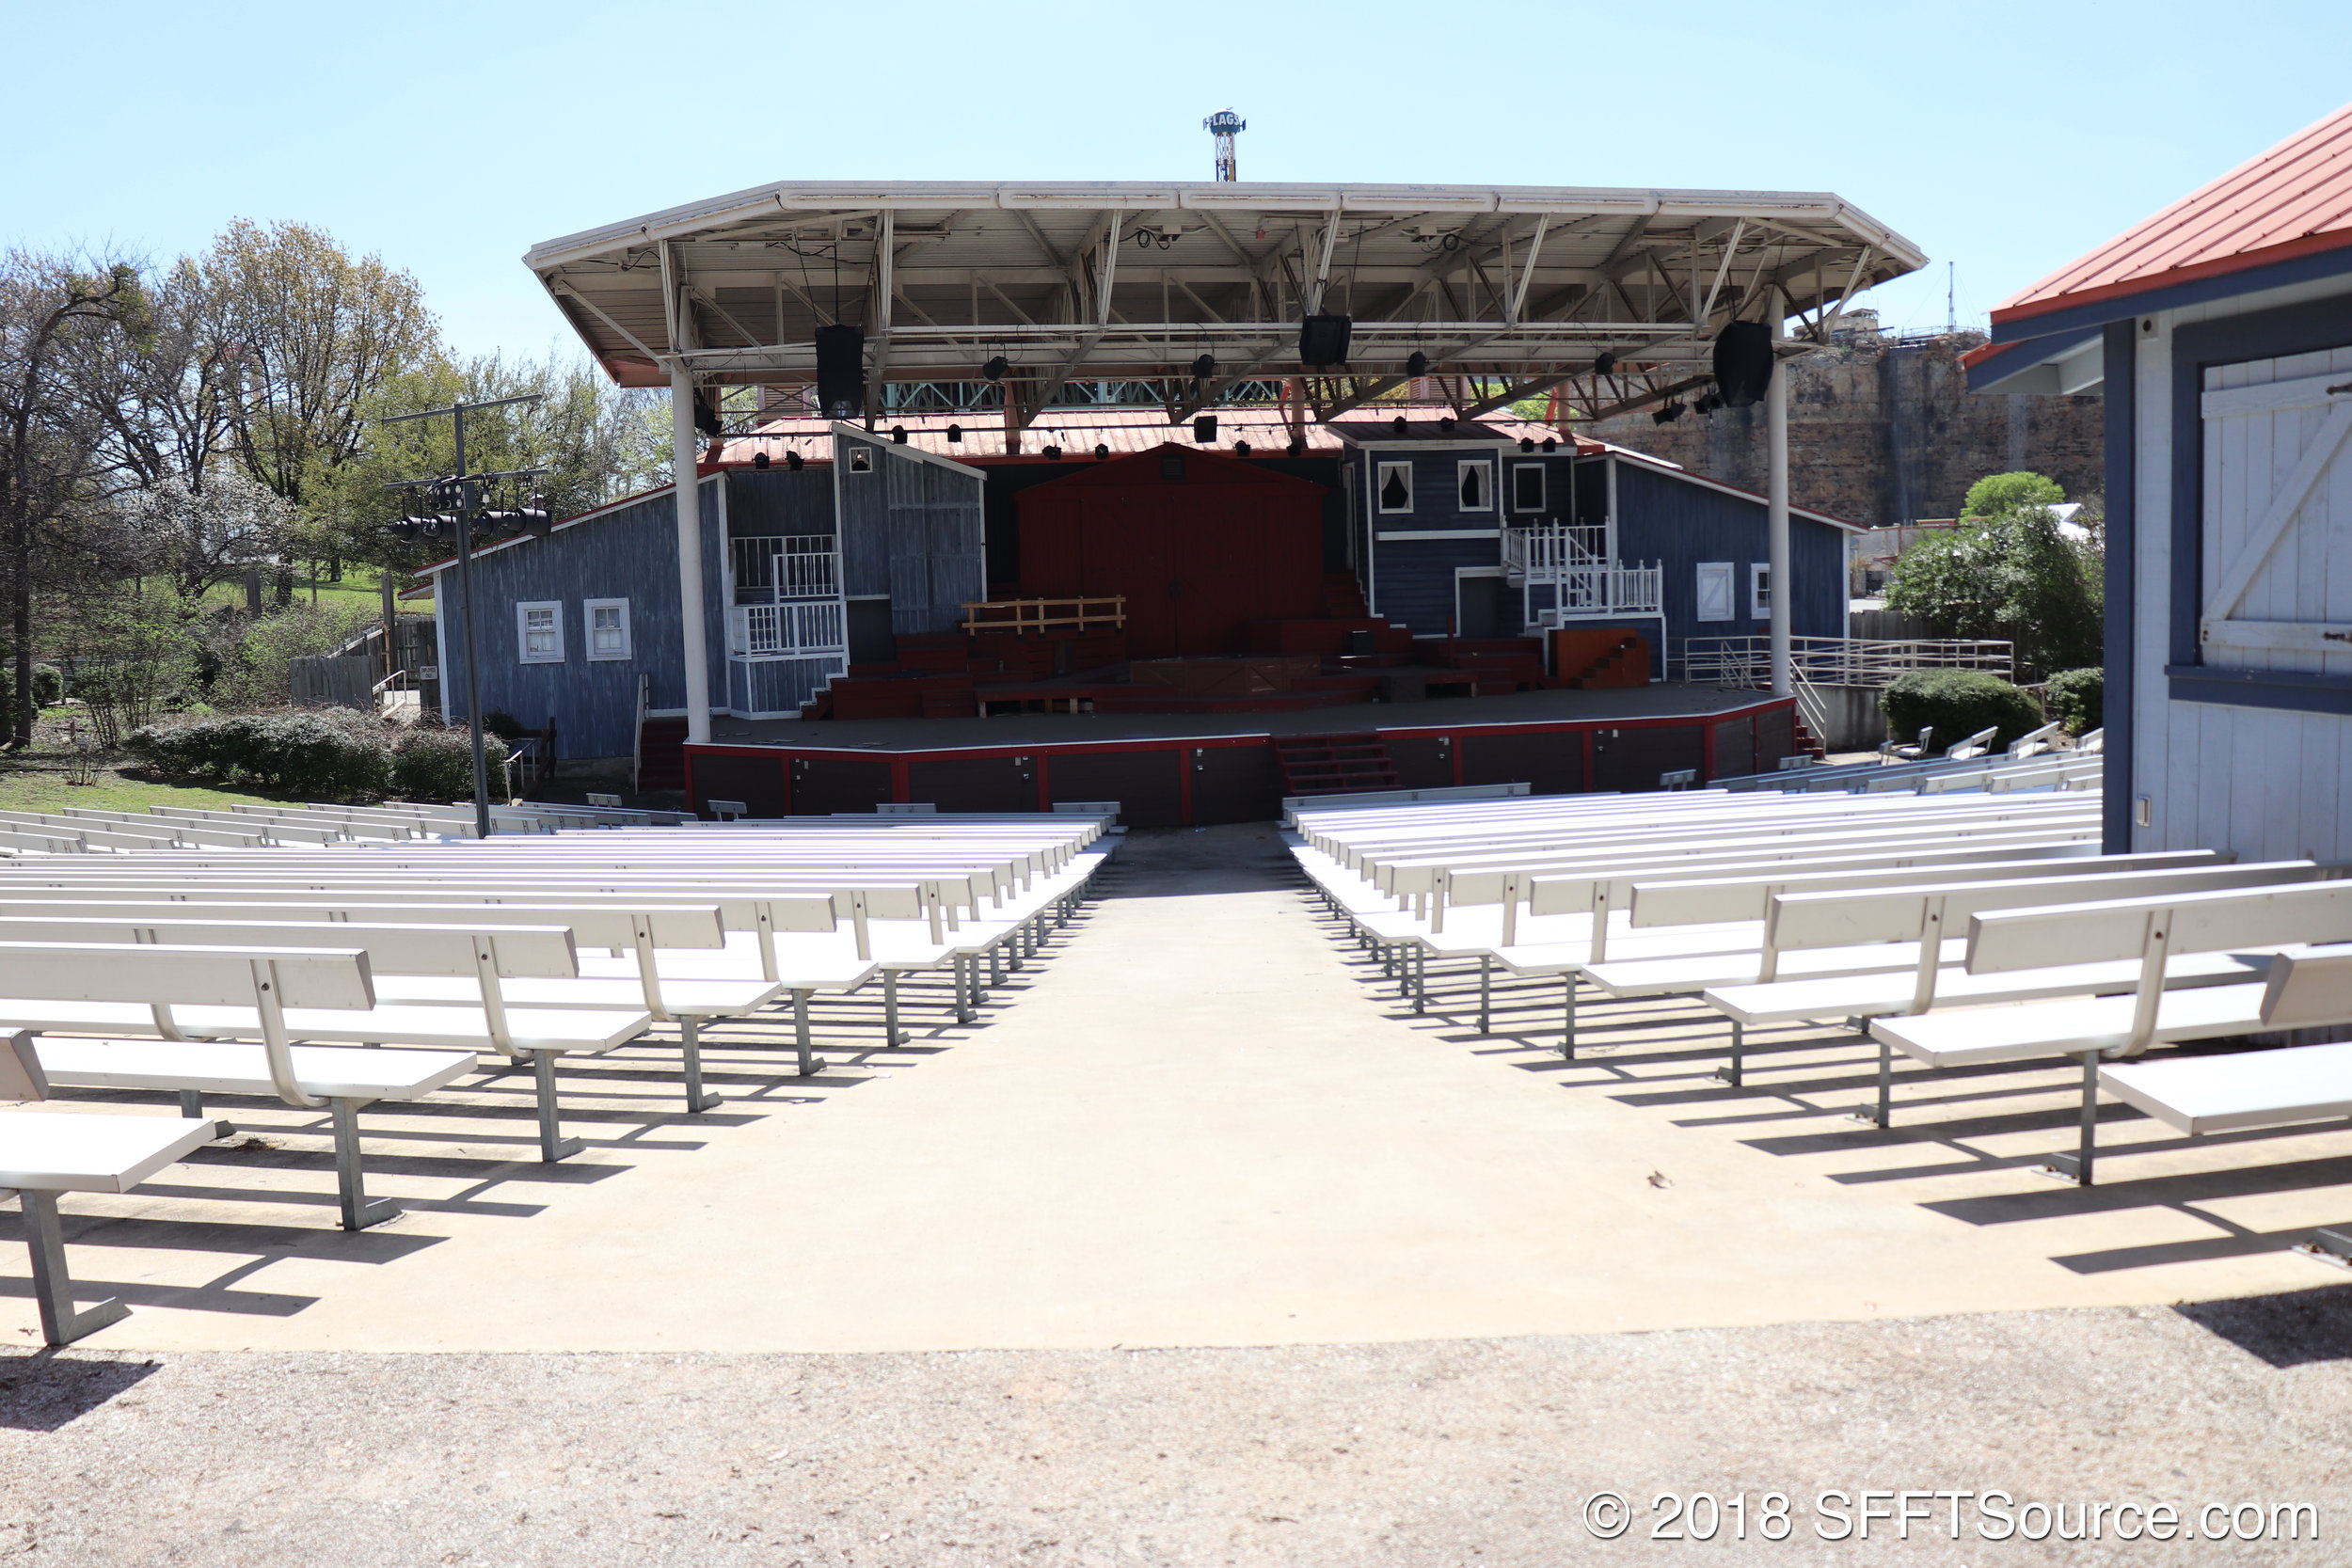 The venue features bench seating with backs.